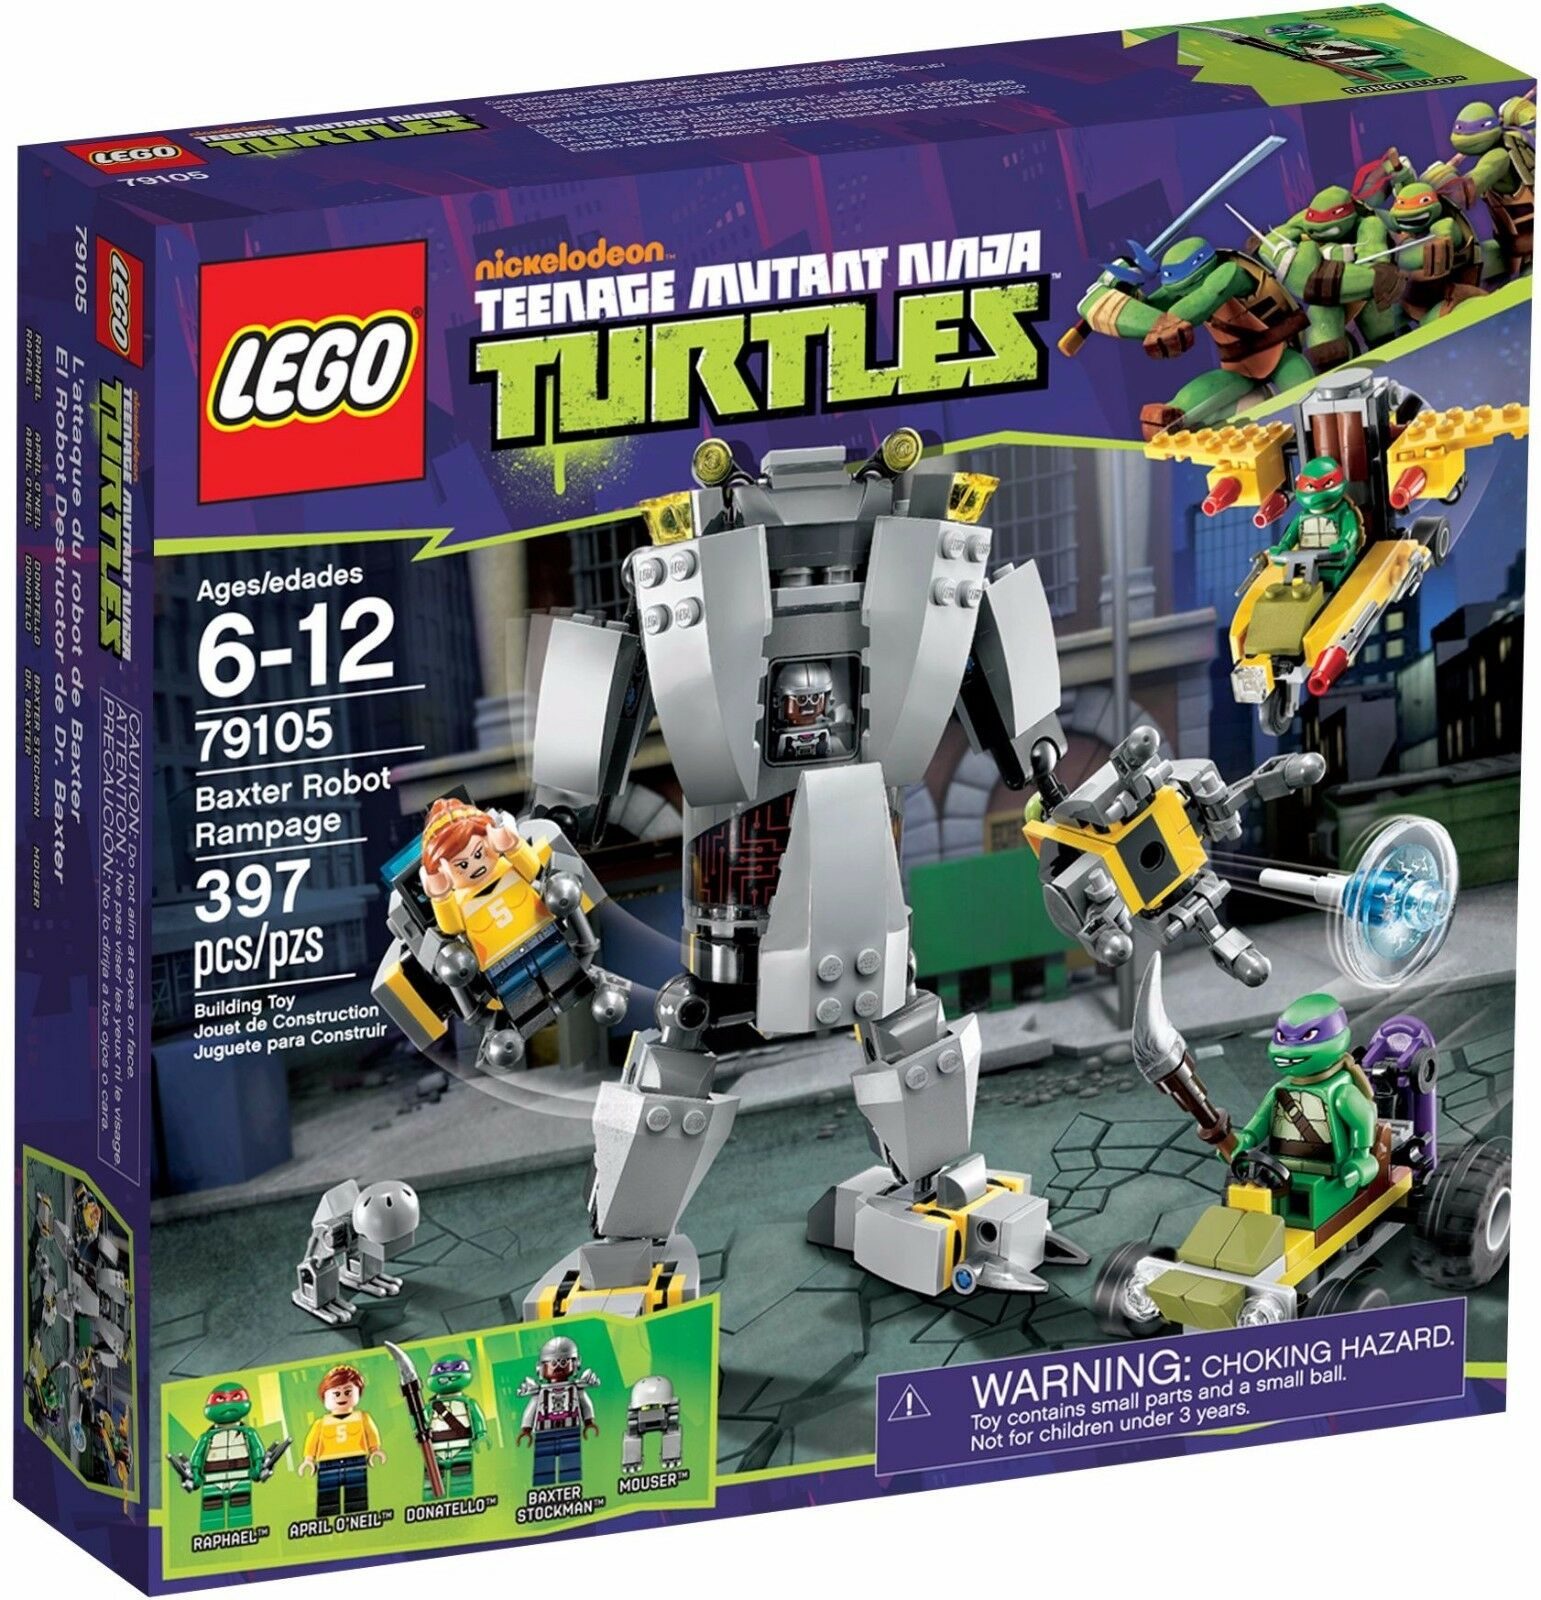 LEGO 79105 Teenage Mutant Ninja Turtles Baxter Robot Rampage - Bre nuovo Sealed